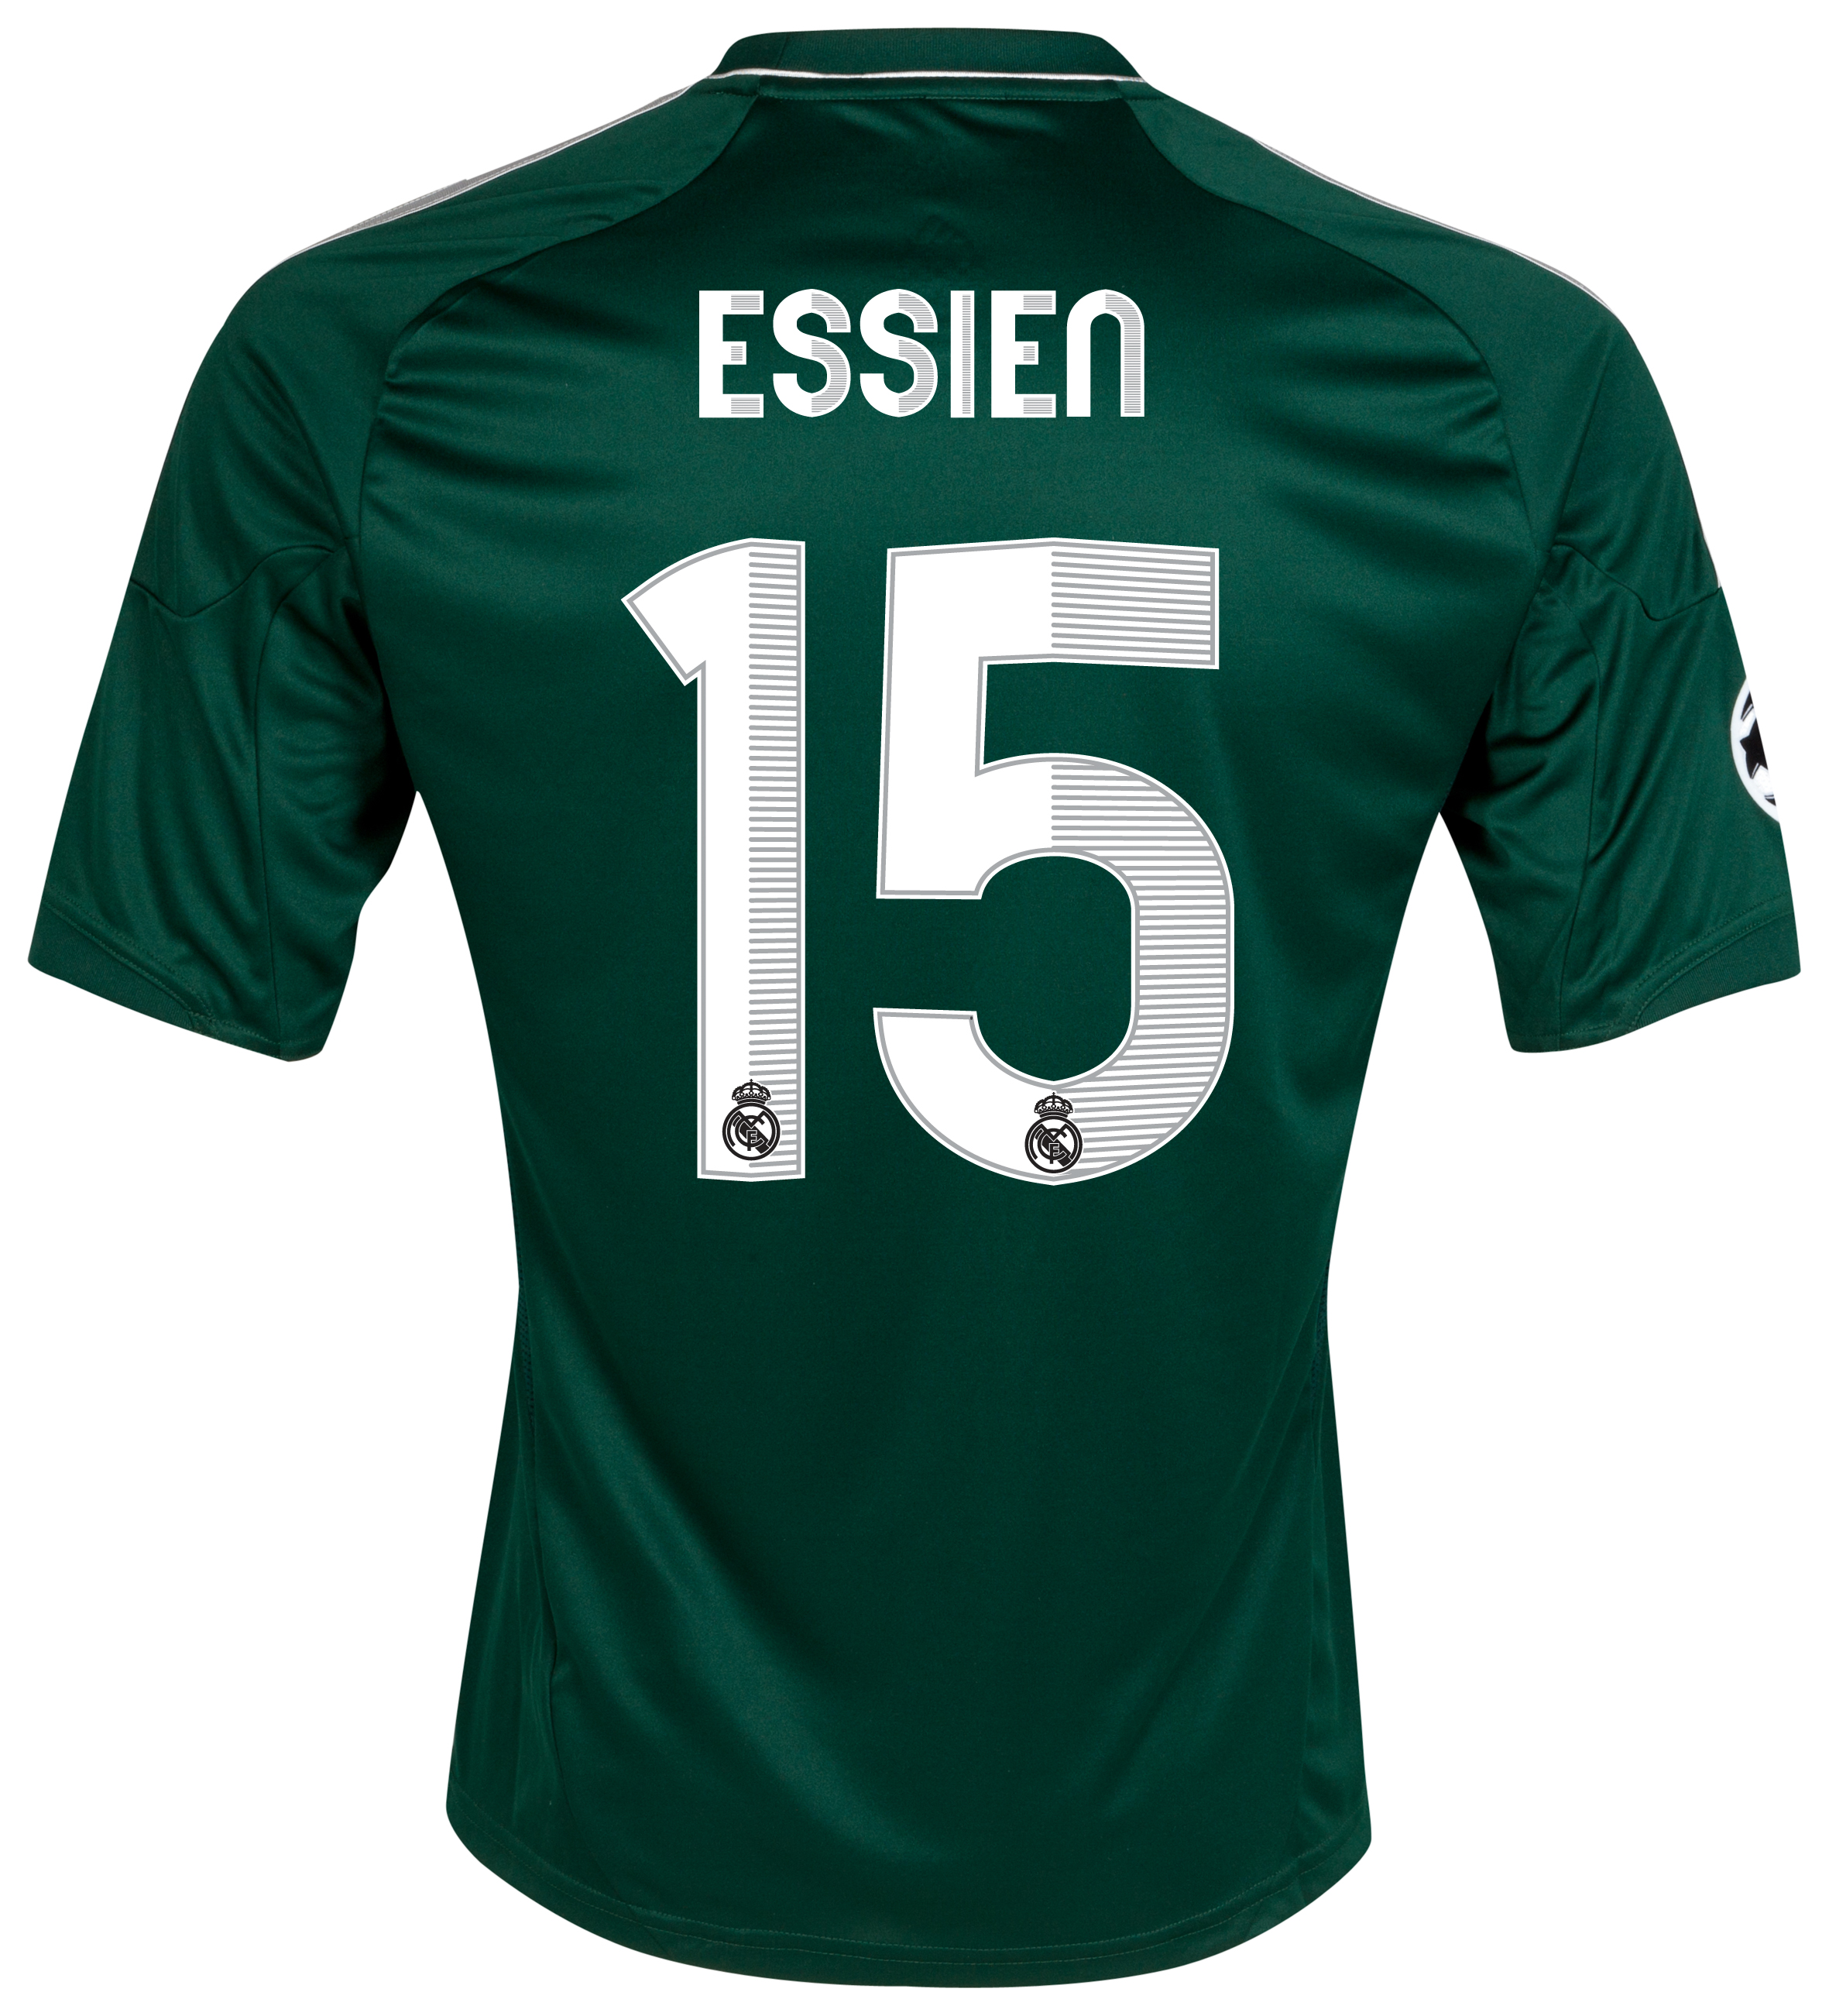 Real Madrid UEFA Champions League Third Shirt 2012/13 with Essien 15 printing